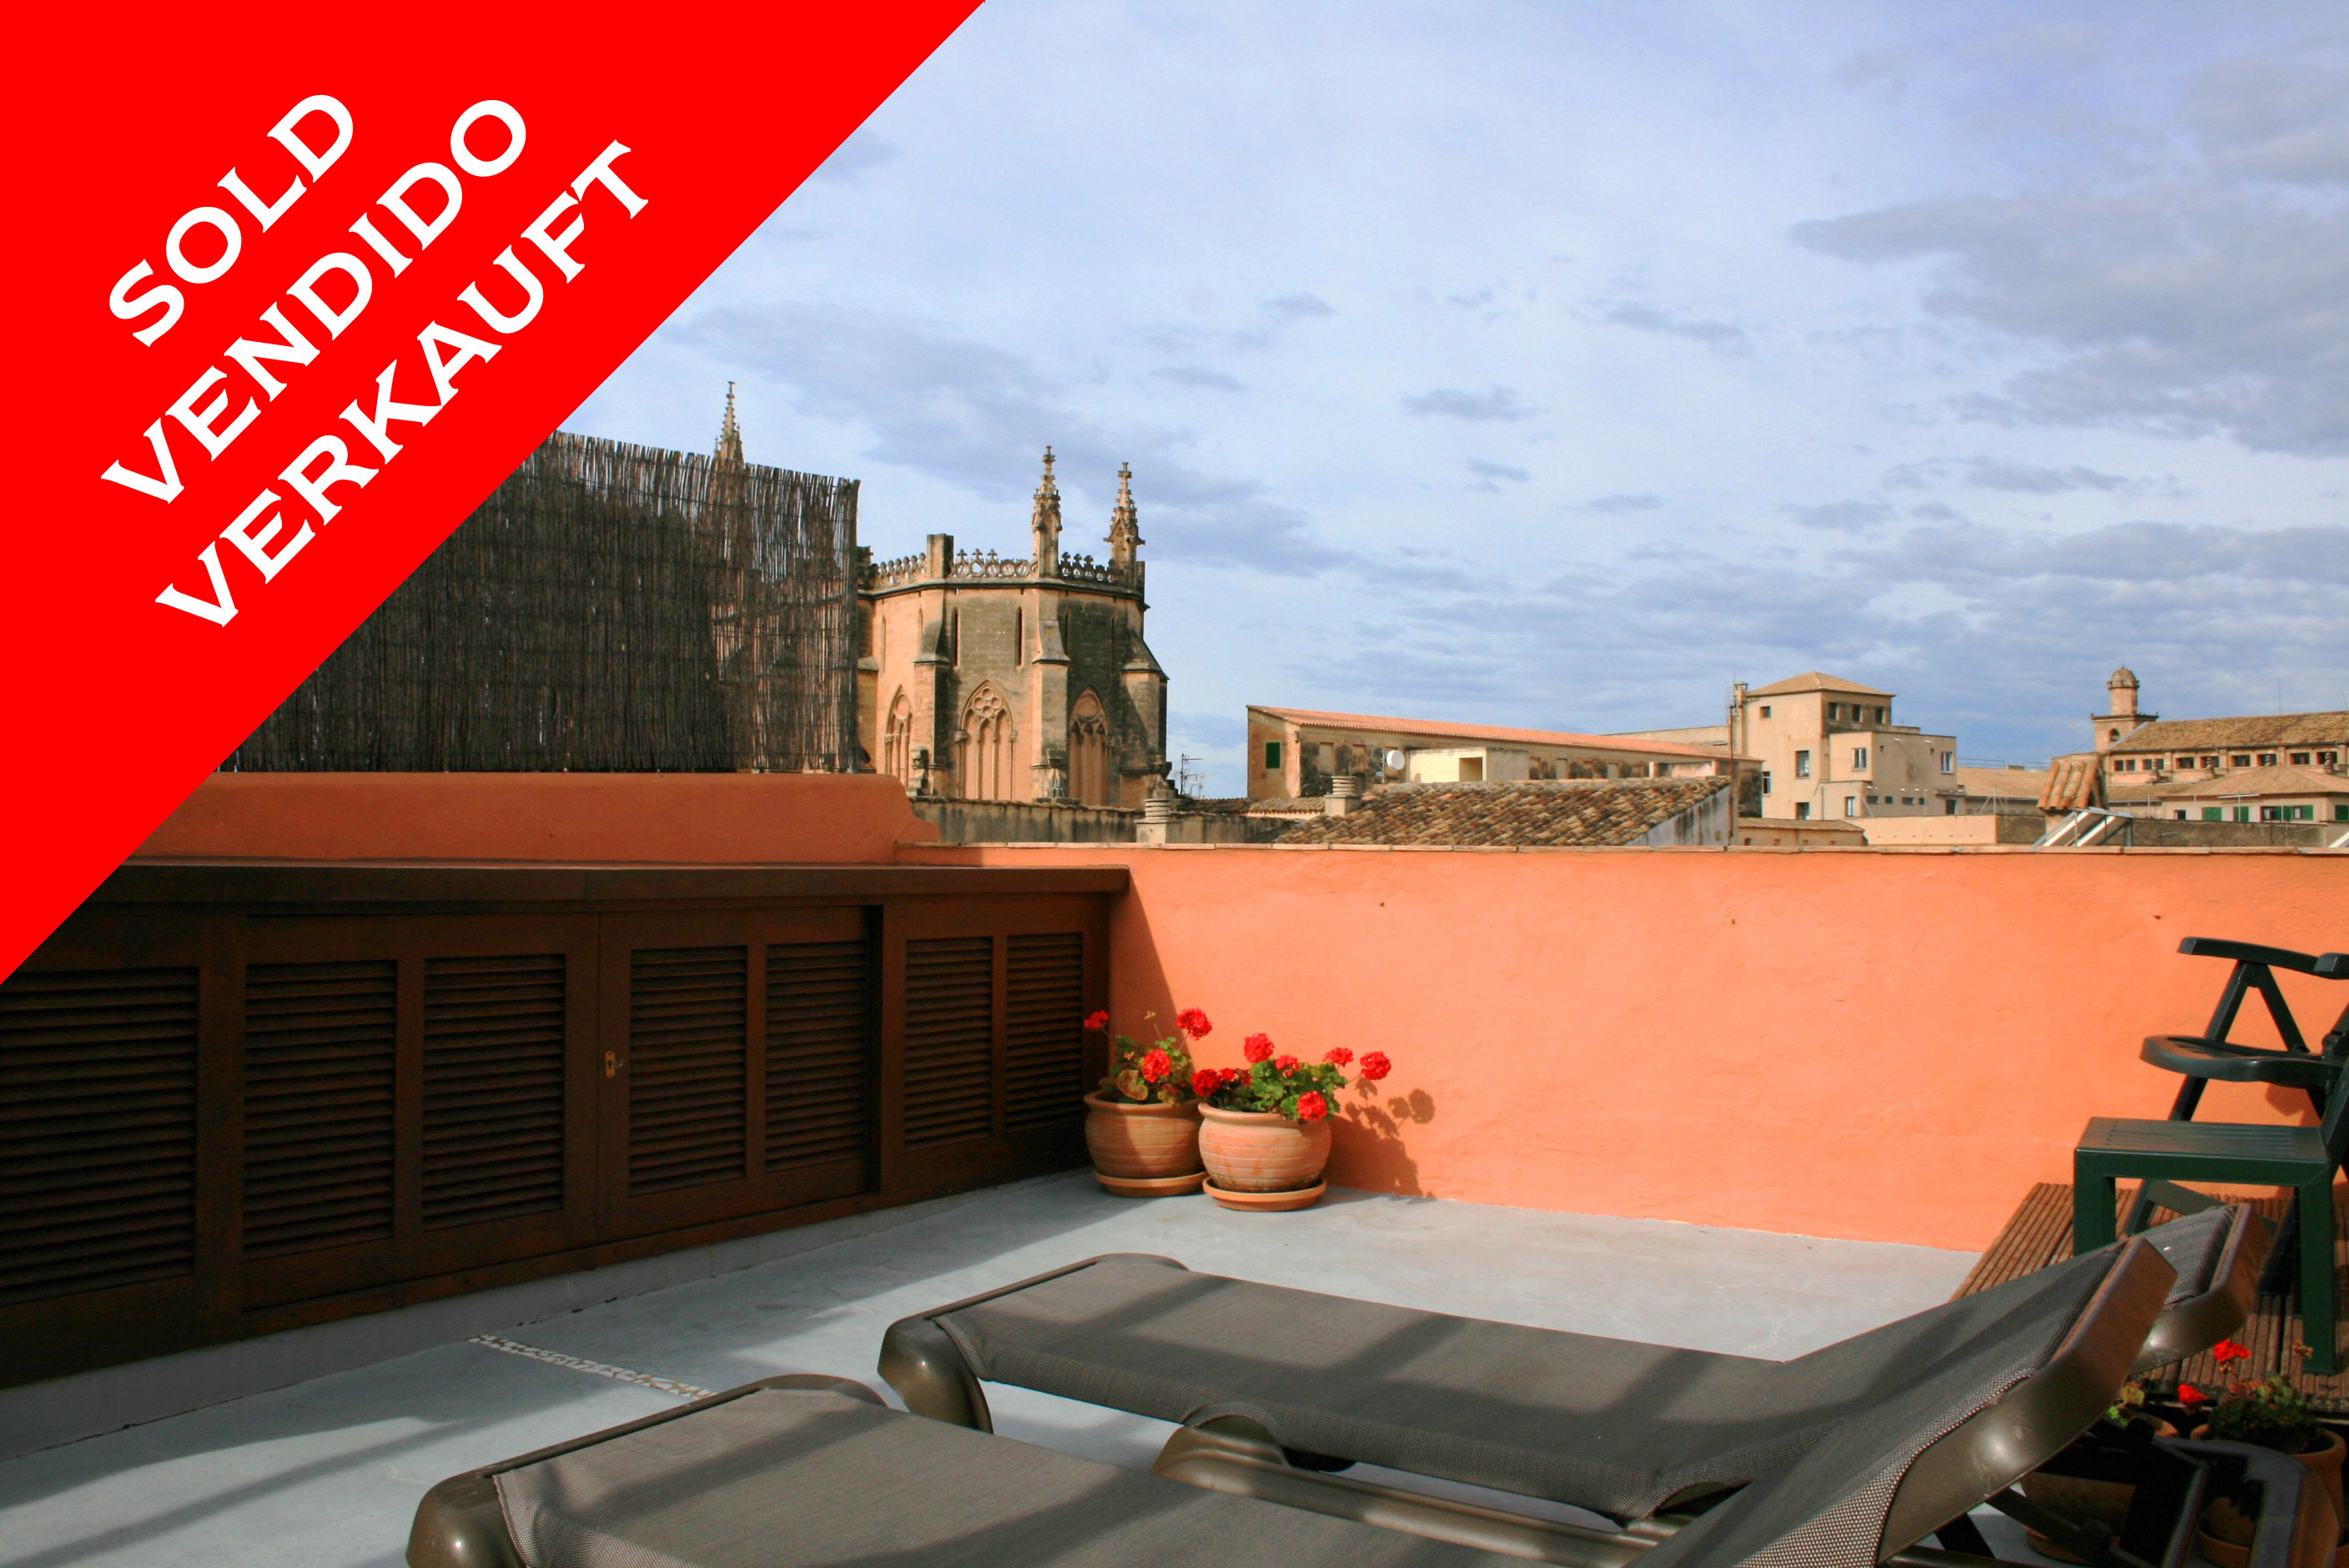 Palma - Cosy apartment with terrace in the old town. Sold!